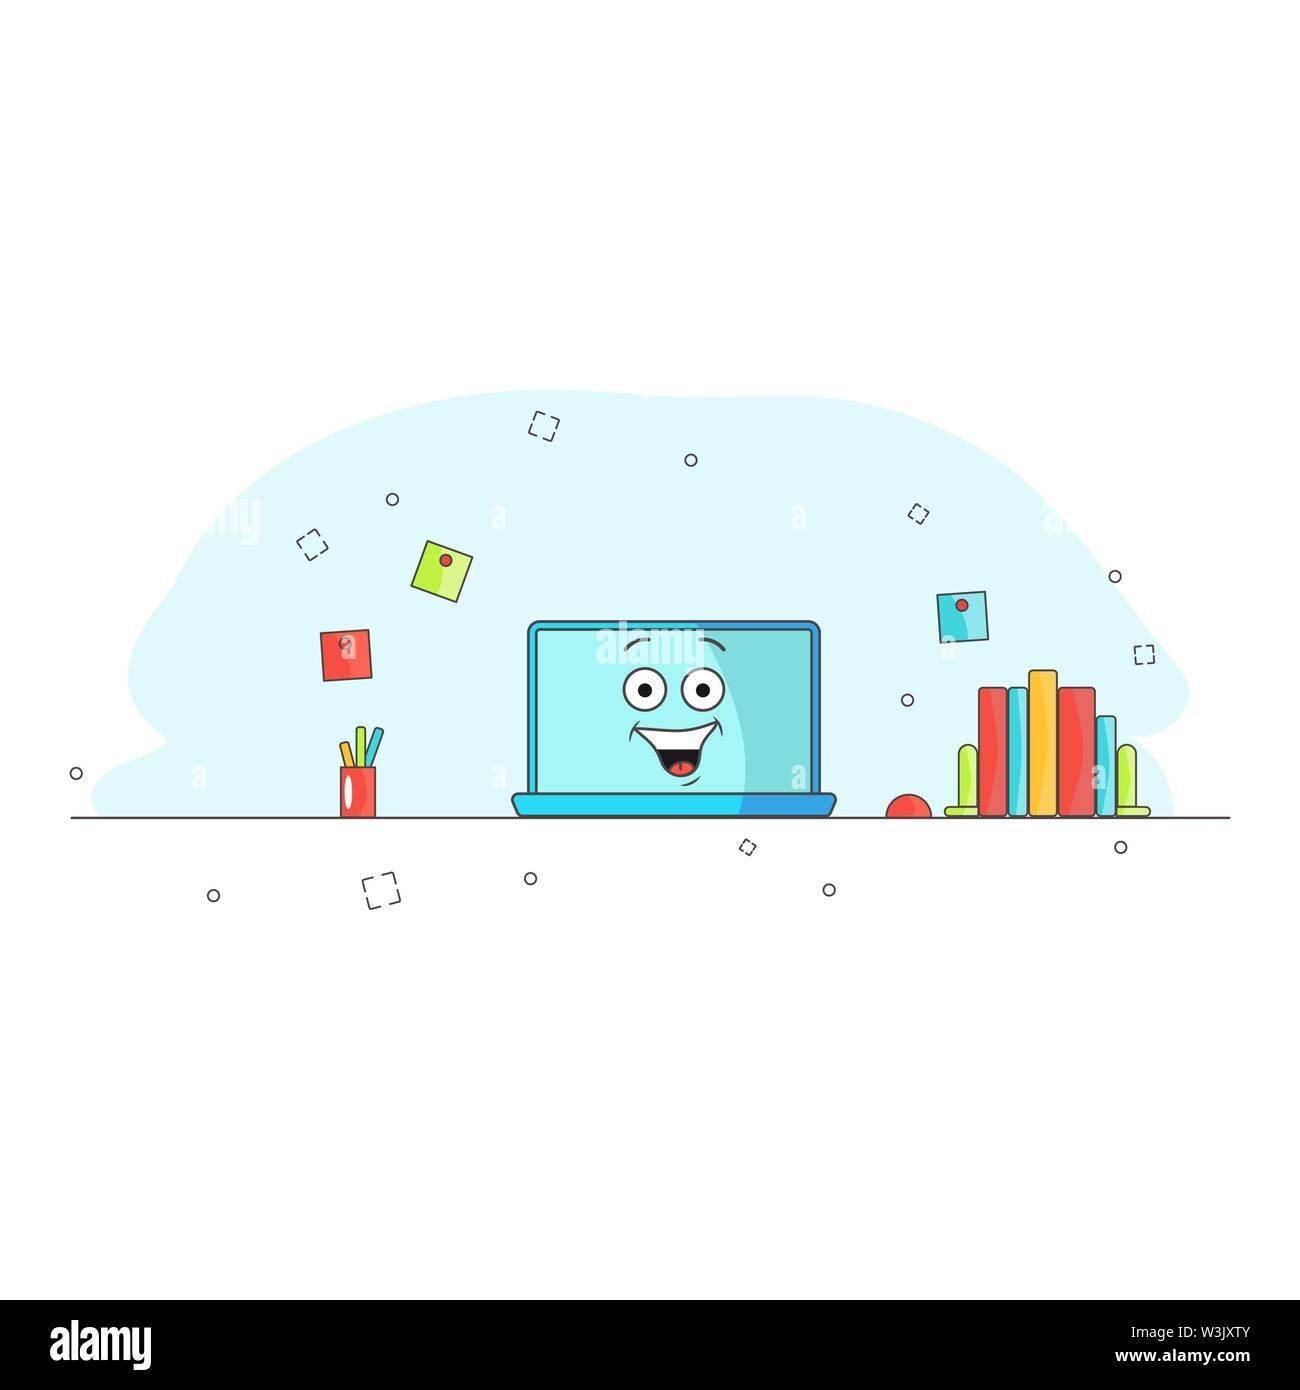 Computer repaired. Funny cartoon computer character rejoices and laughs. Workspace. Assisted. Vector illustration for blog, website, banner. Blue background. Office equipment. Thumbs up. Emotional laptop Stock Vector